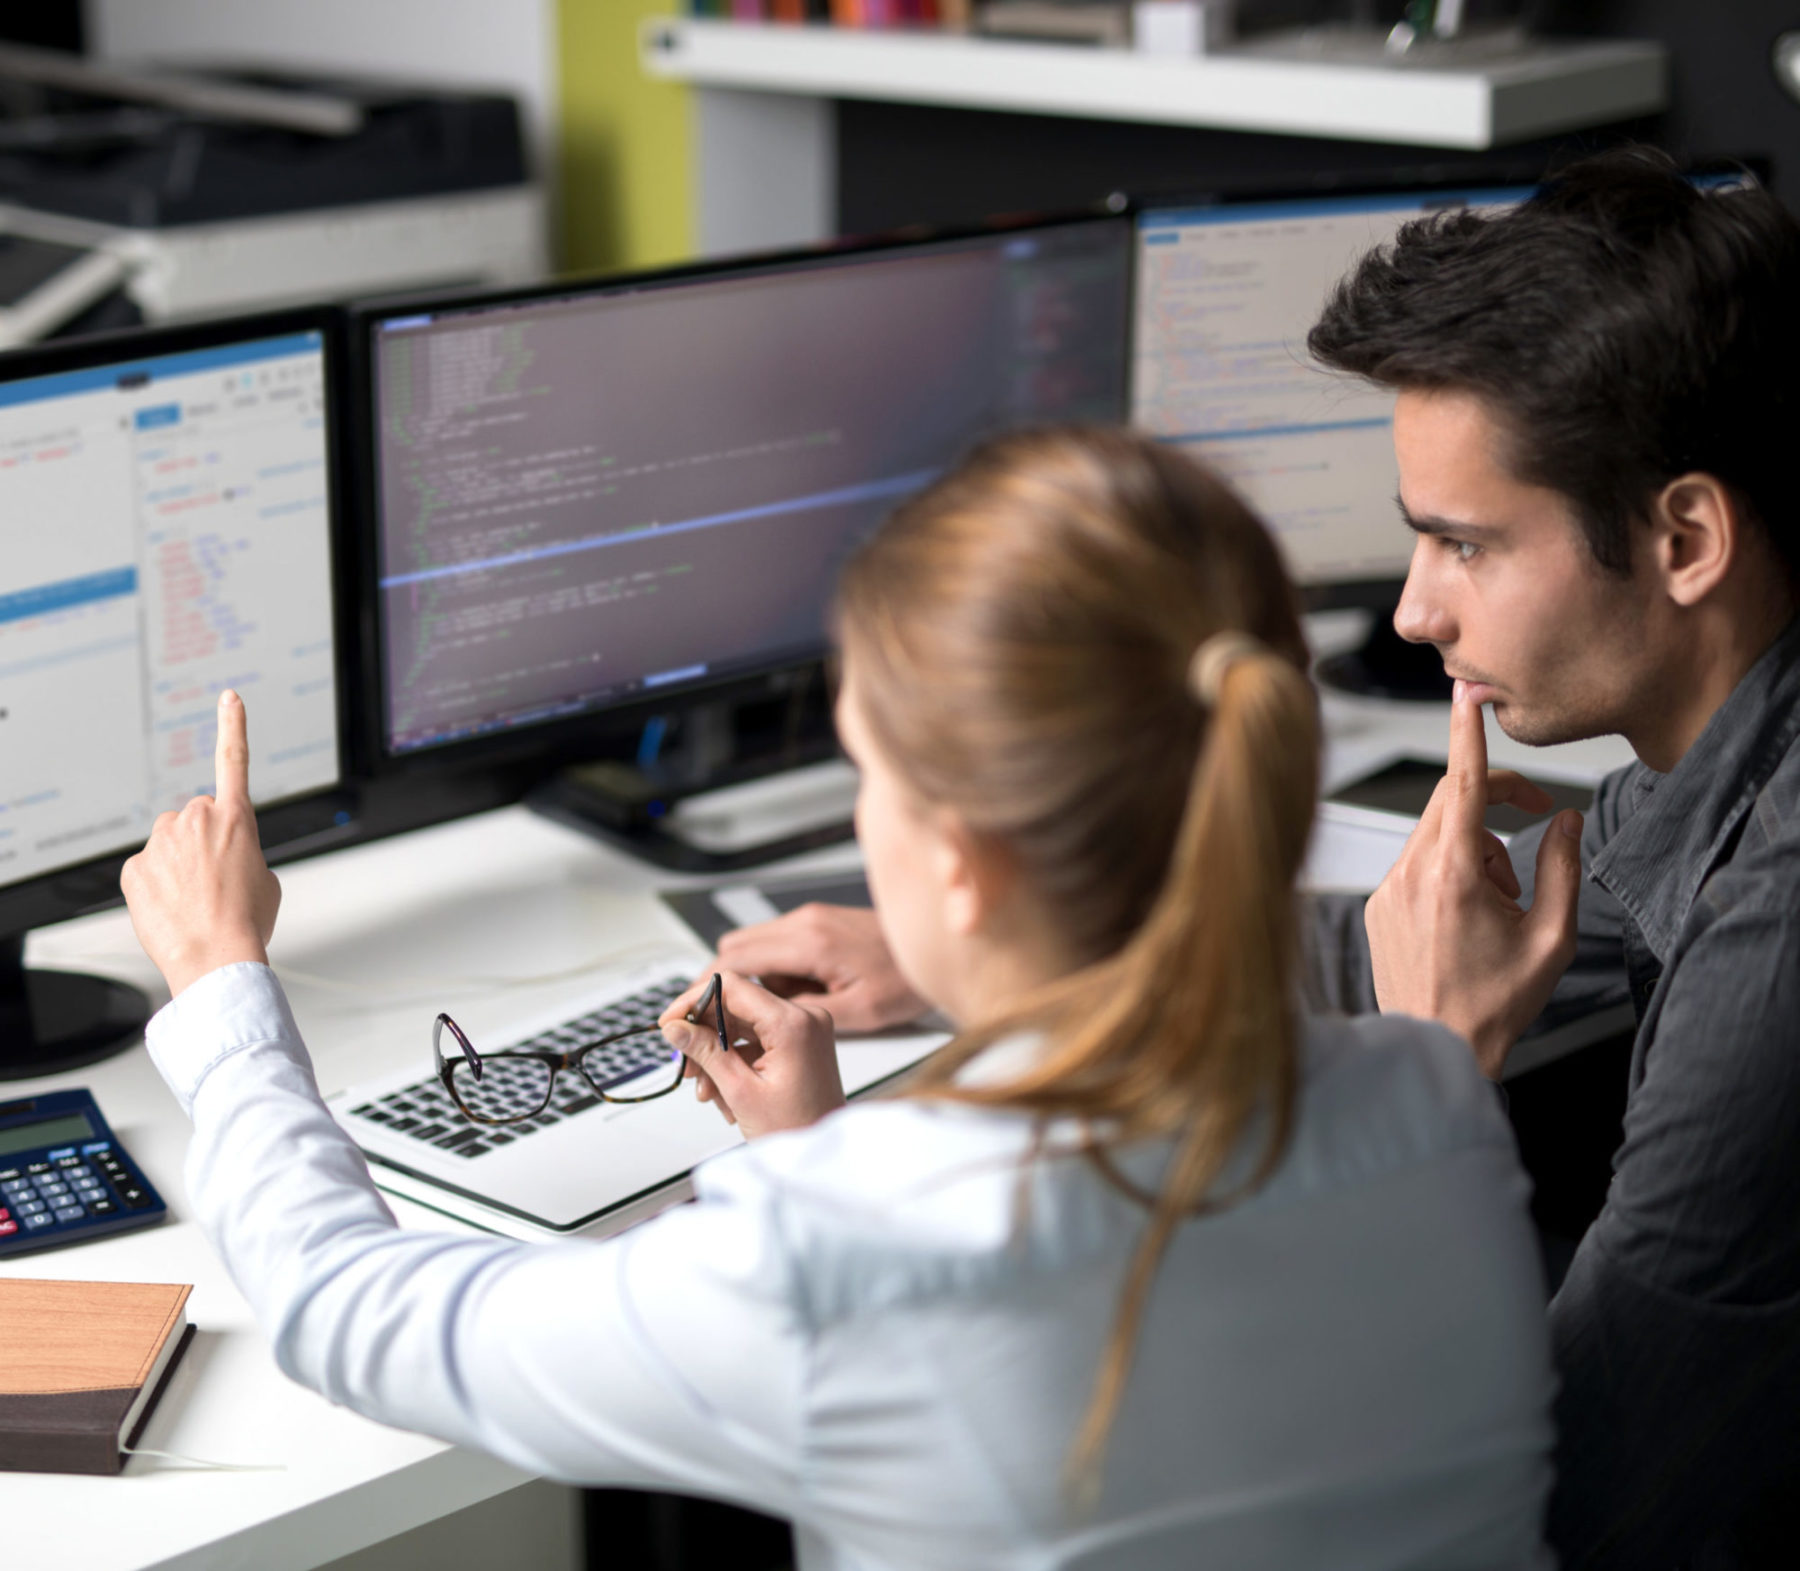 two individuals reviewing website code on multiple computer screens